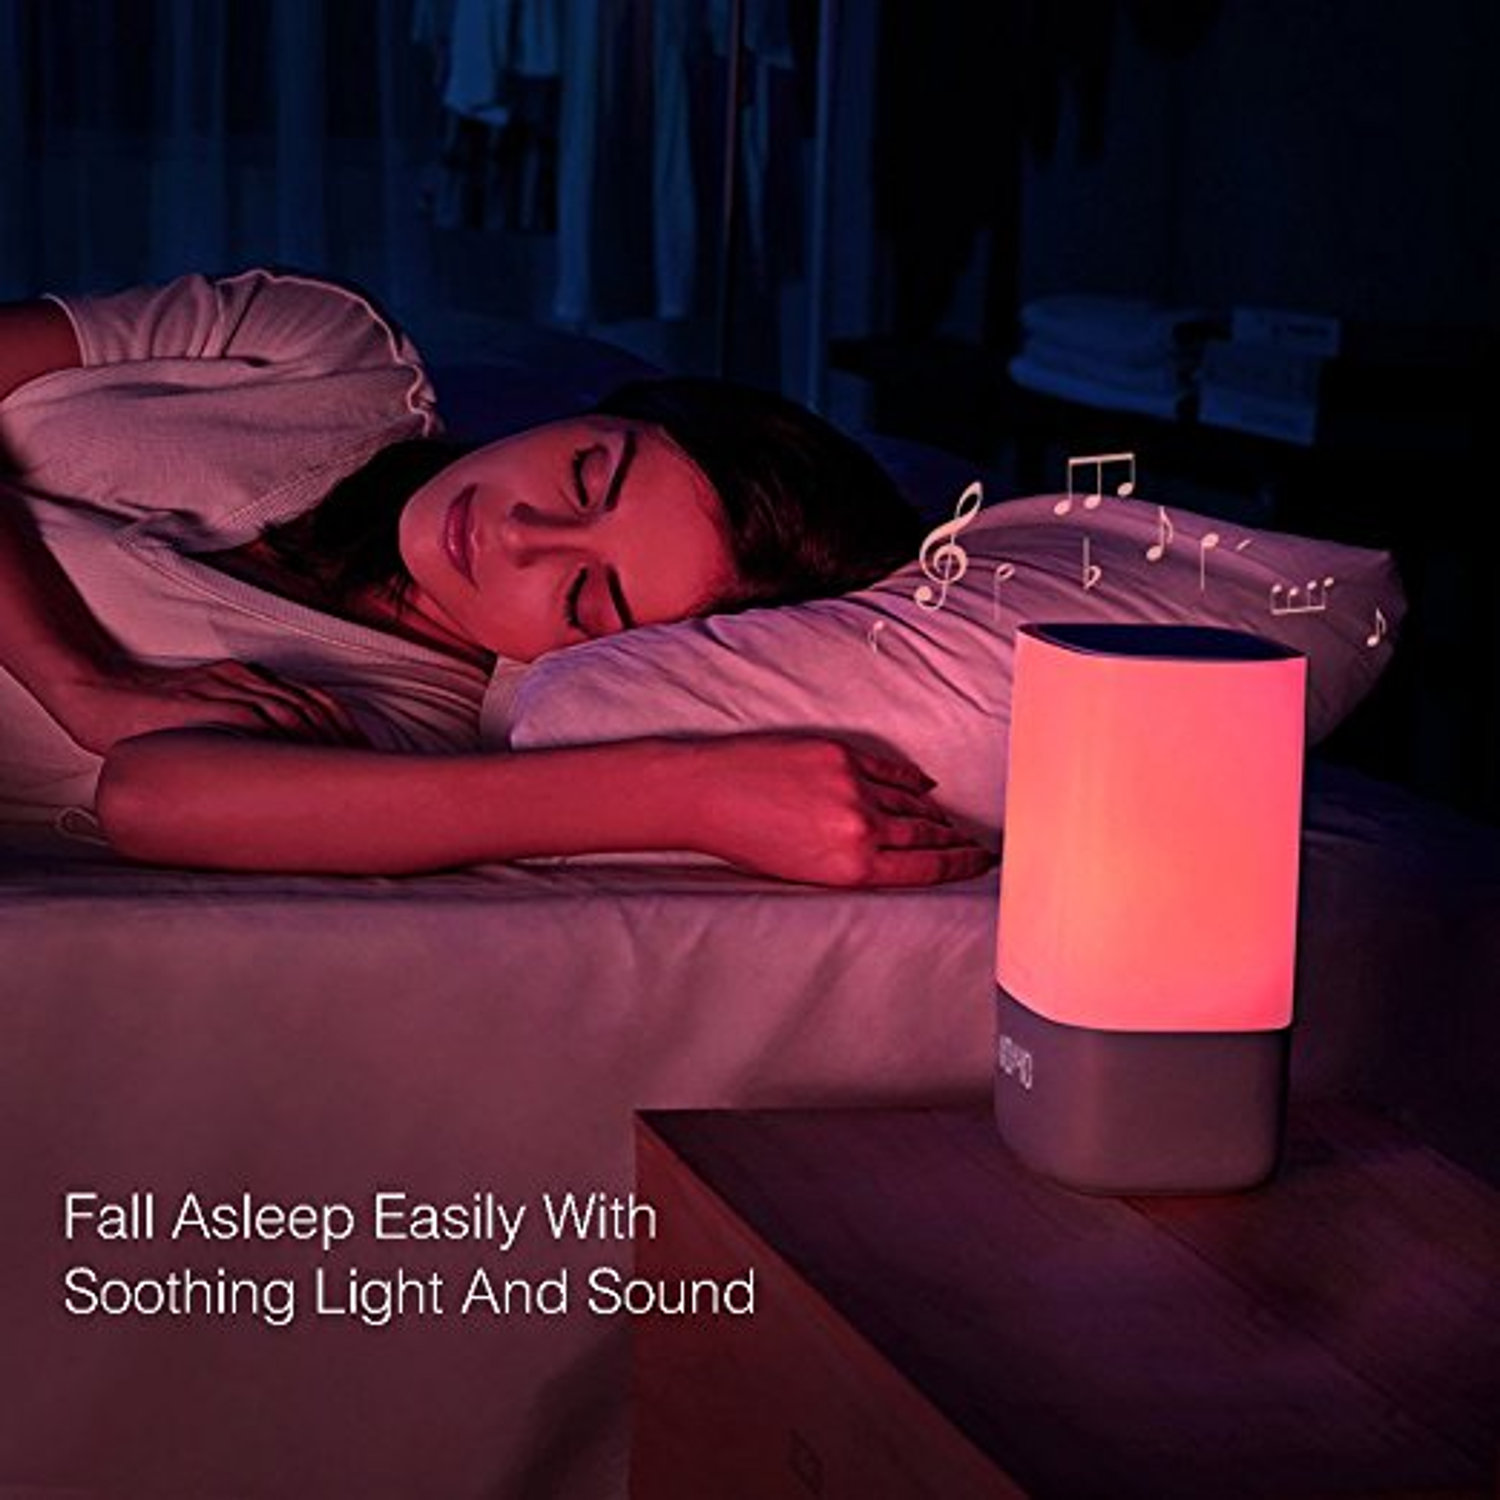 & Smart Light Offers a Cure for Insomnia - Electronic House